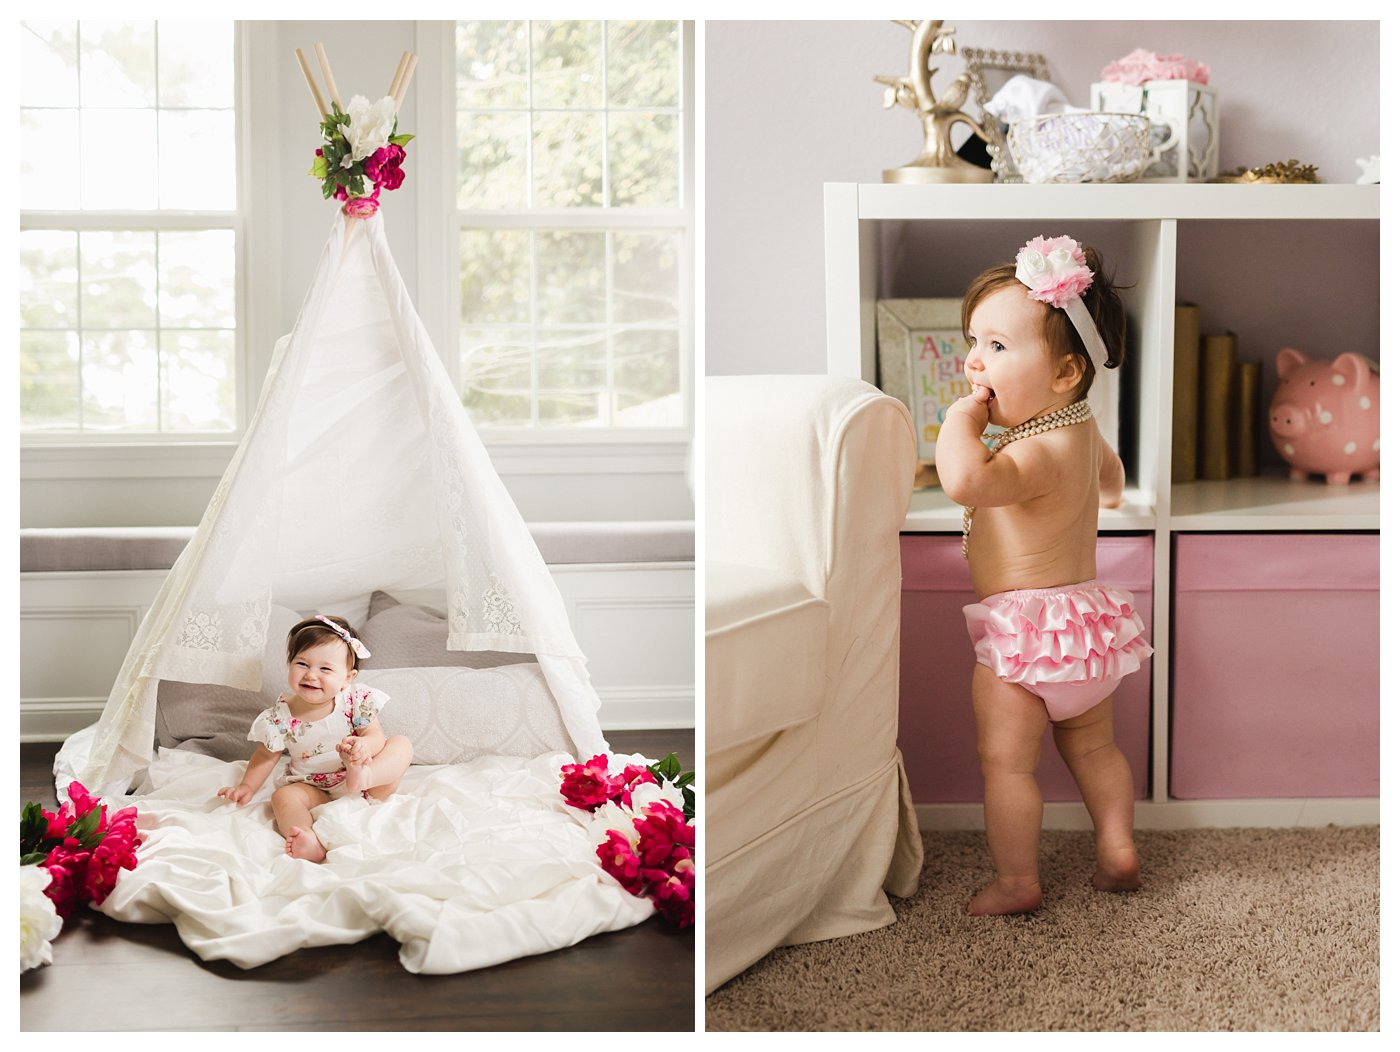 Floral Teepee Photo Session for 1 Year Old